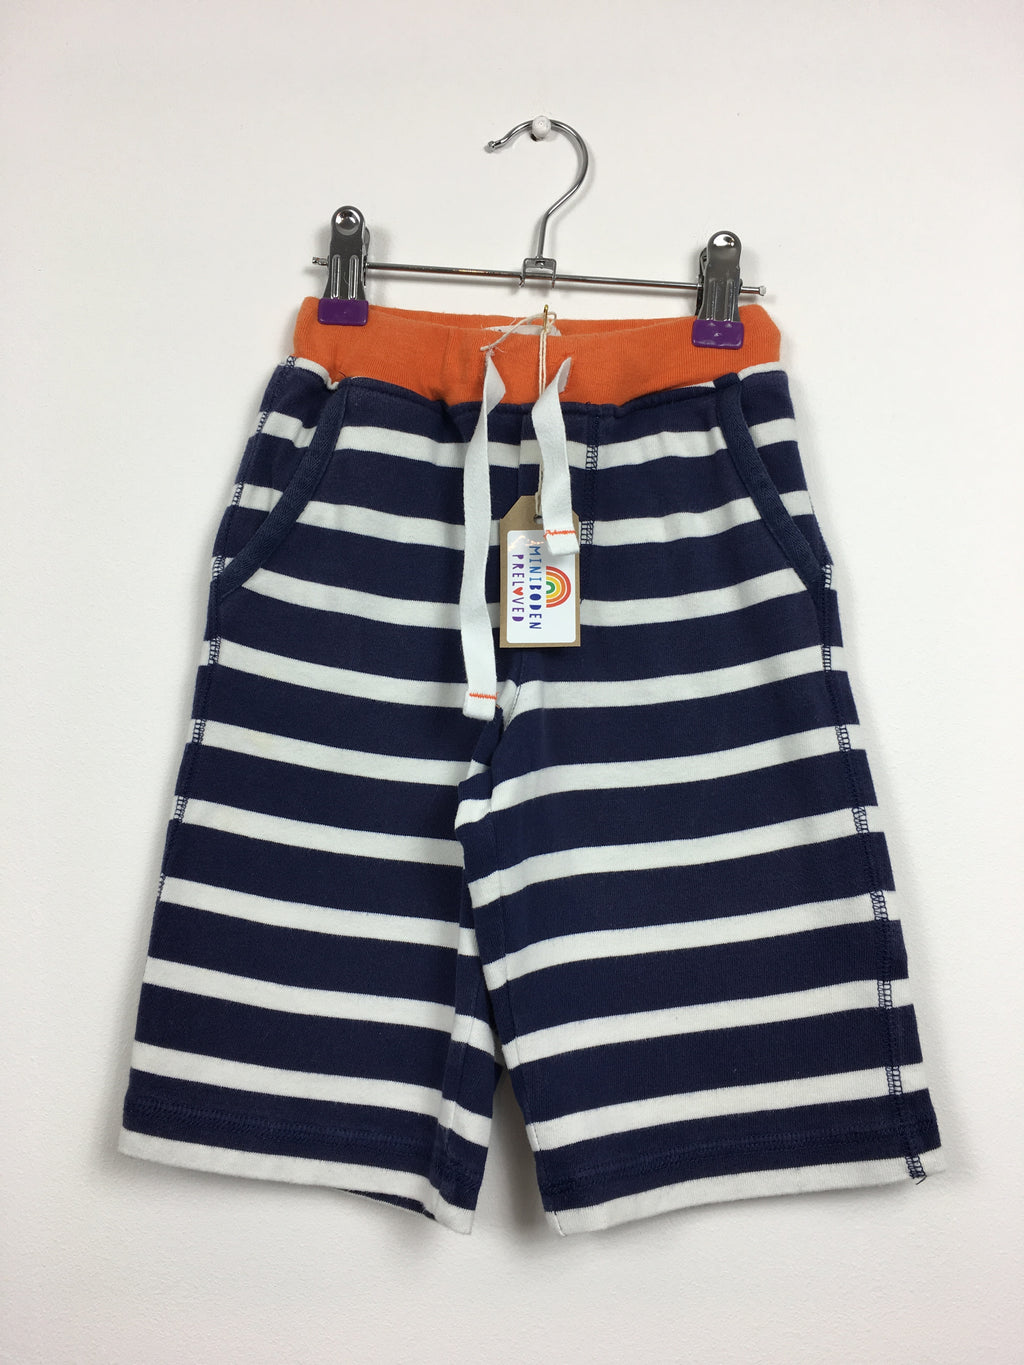 Navy & White Stripy Cotton Shorts (4 Years)